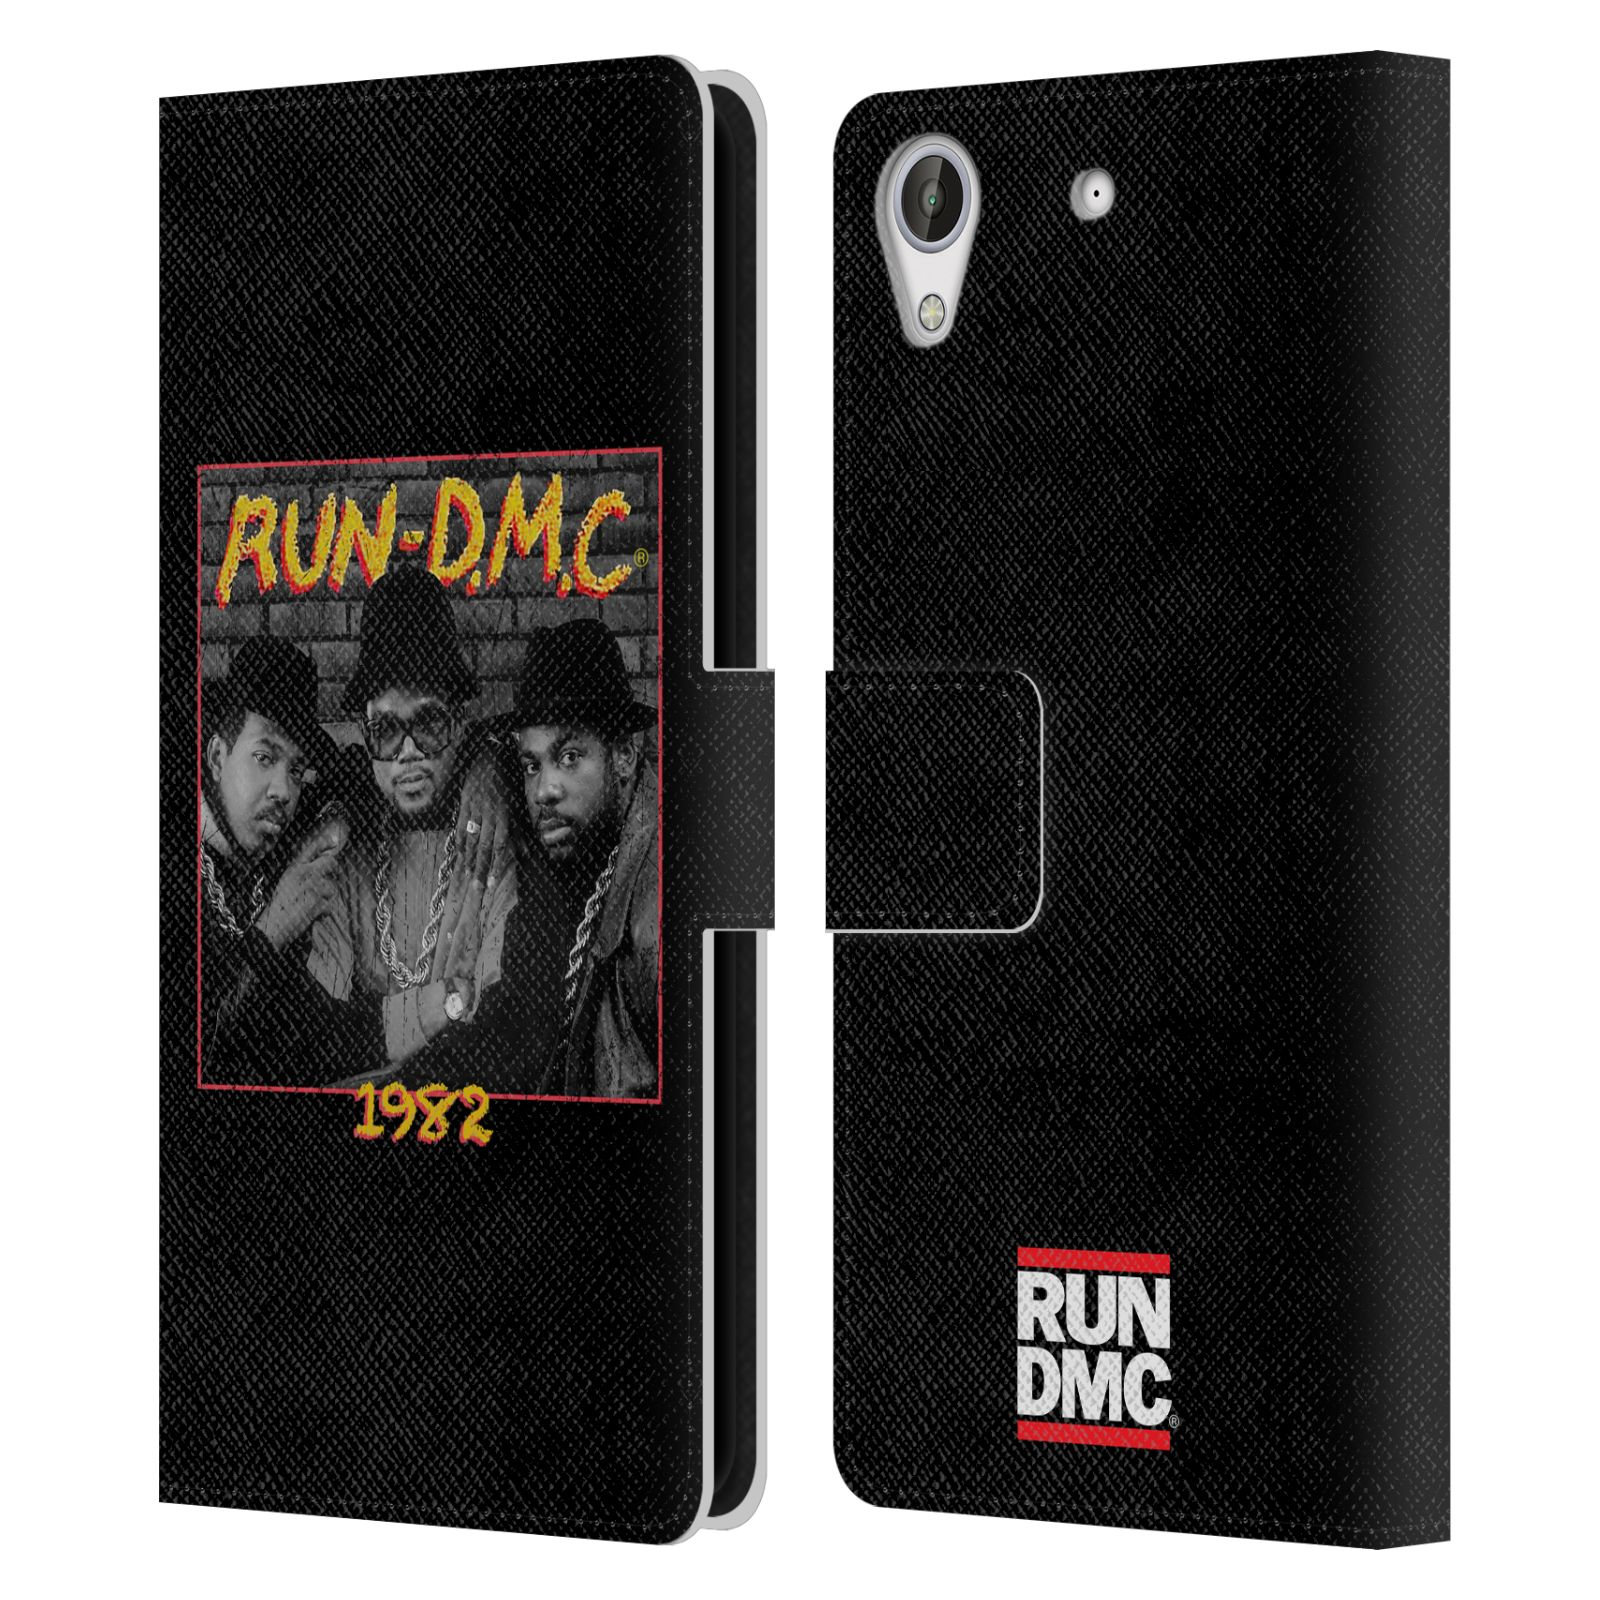 OFFICIAL-RUN-D-M-C-KEY-ART-LEATHER-BOOK-WALLET-CASE-COVER-FOR-HTC-PHONES-2